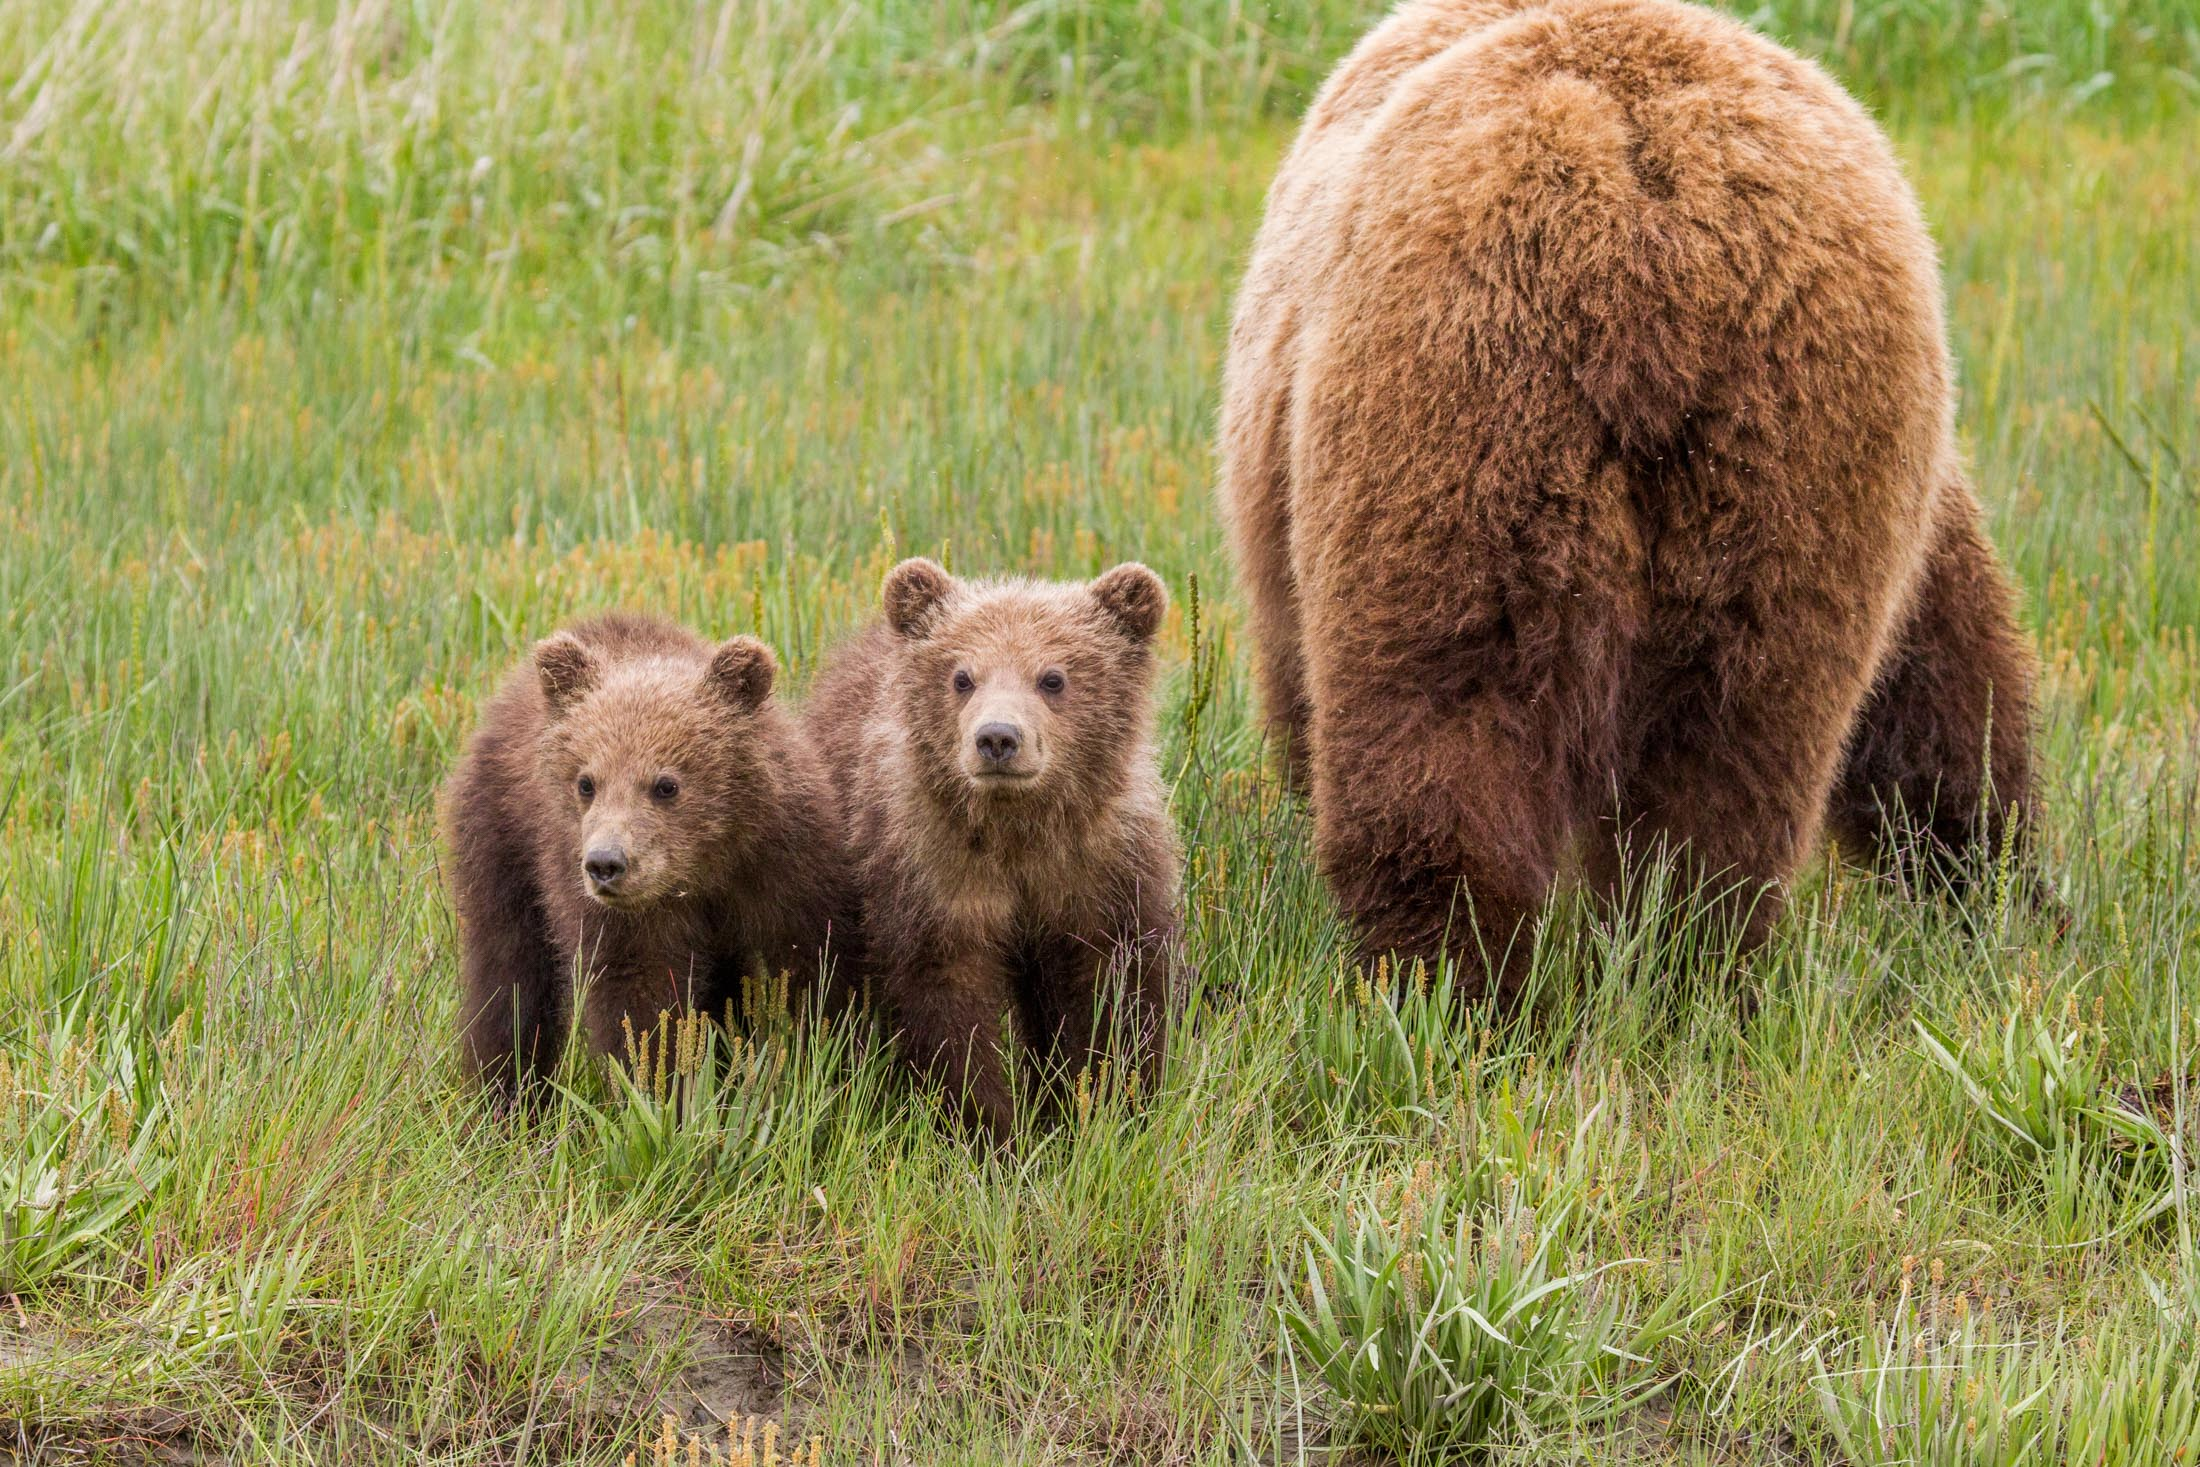 Grizzly Bear cubs watching photographers while mom feeds on grass, a   fine art limited edition of 300 prints